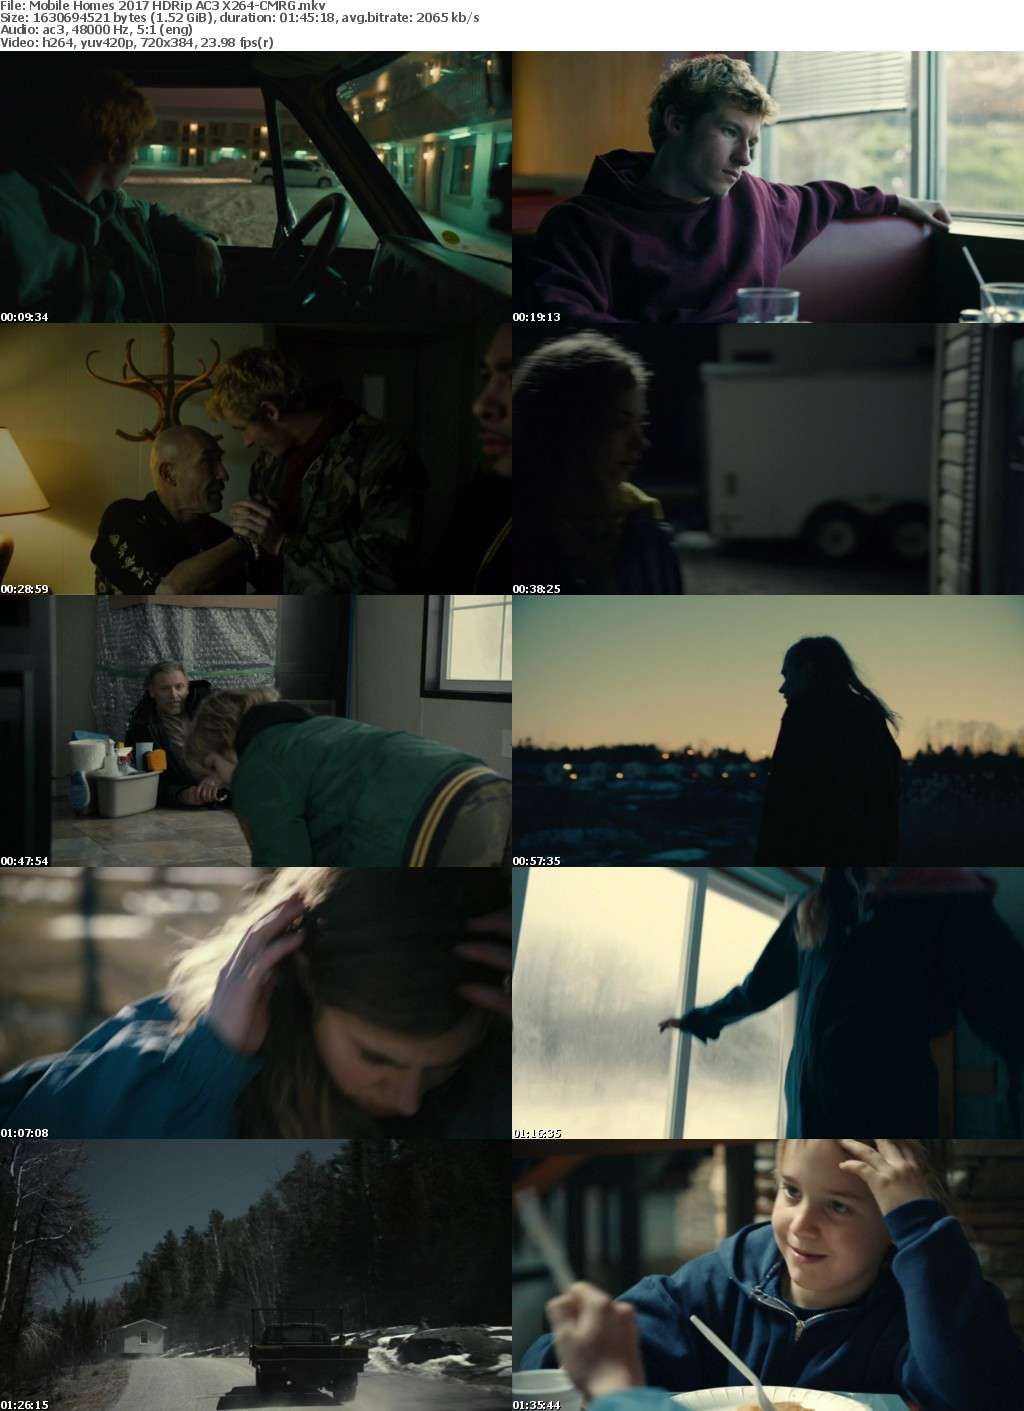 Mobile Homes (2017) HDRip AC3 X264-CMRG